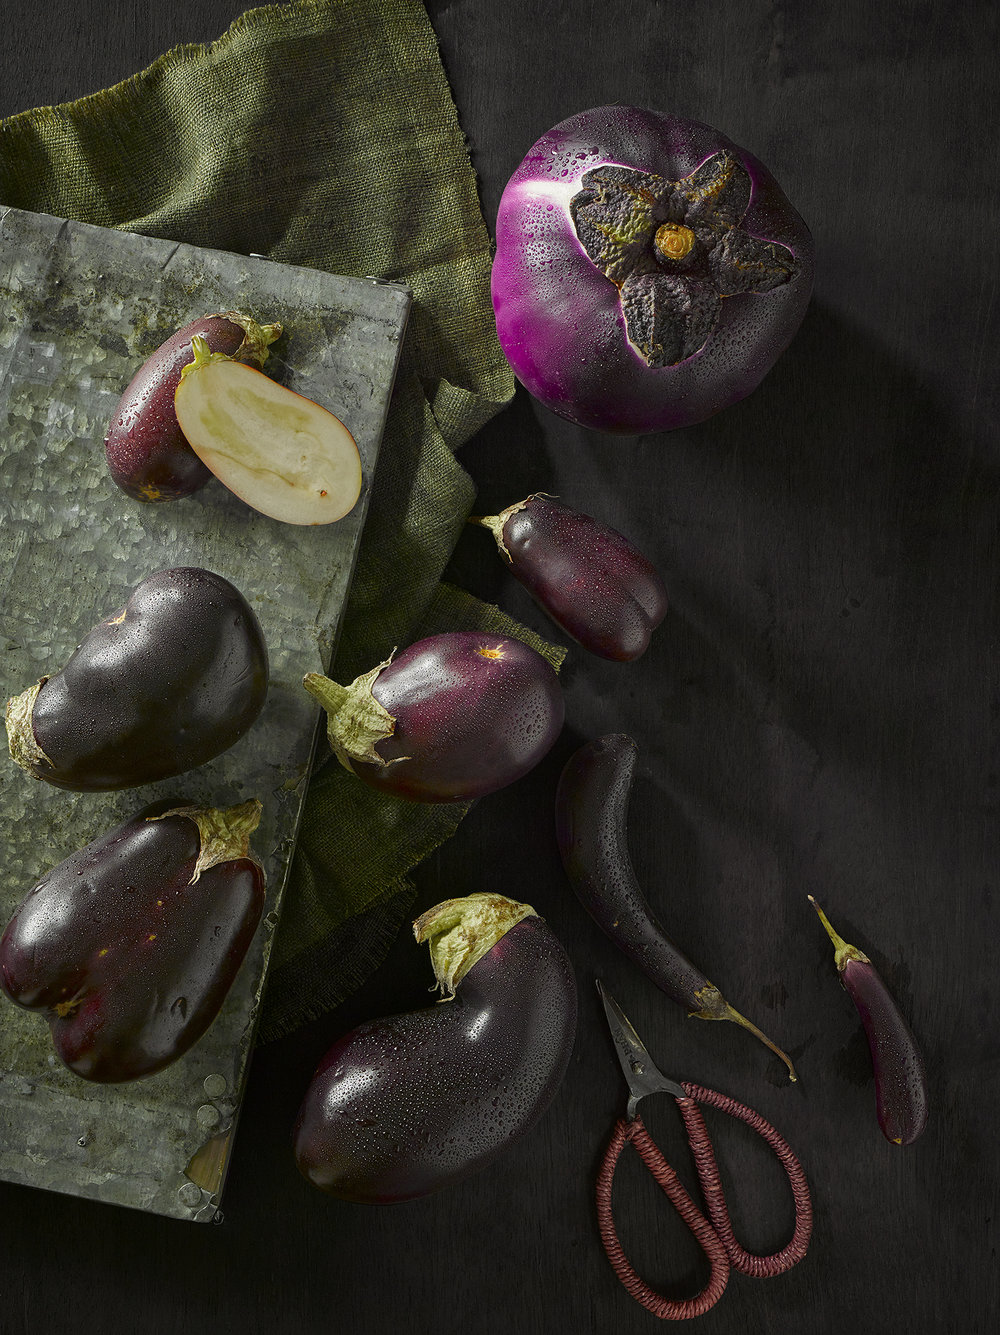 Dark and atmospheric lifestyle food photography. A collection of ugly aubergine ripe and ready to eaten, still life composition of food, fuit and ugly veg by London Food & lifestyle photographer chris howlett